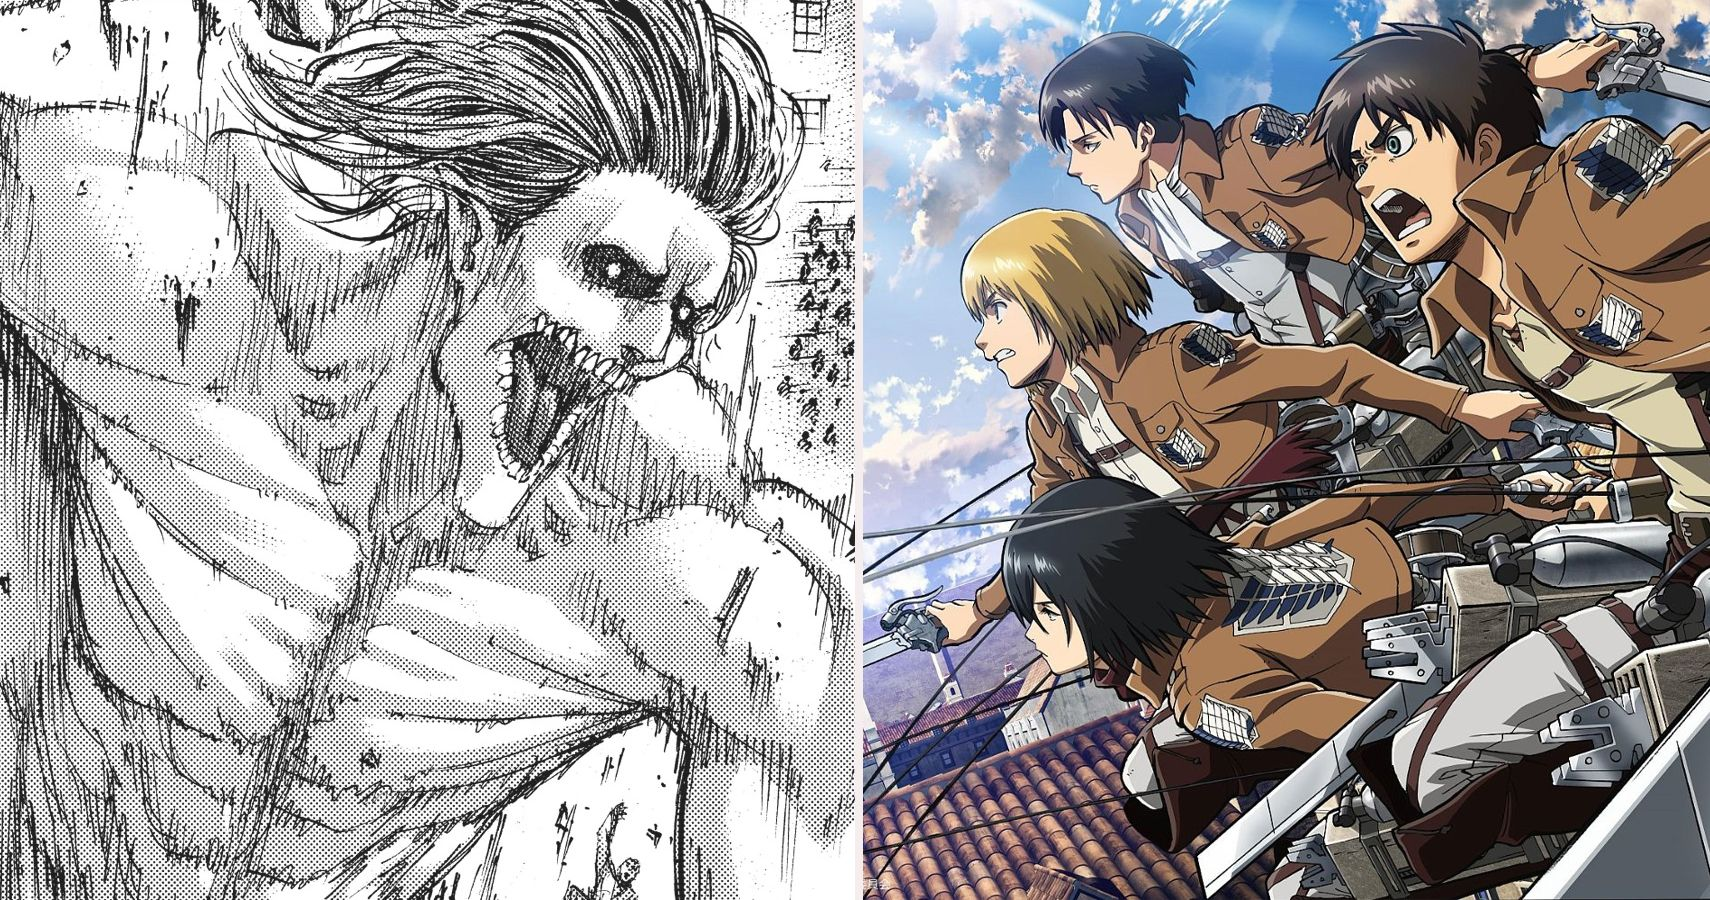 Attack On Titan 10 Things From The Manga We Can T Wait To See In The Anime